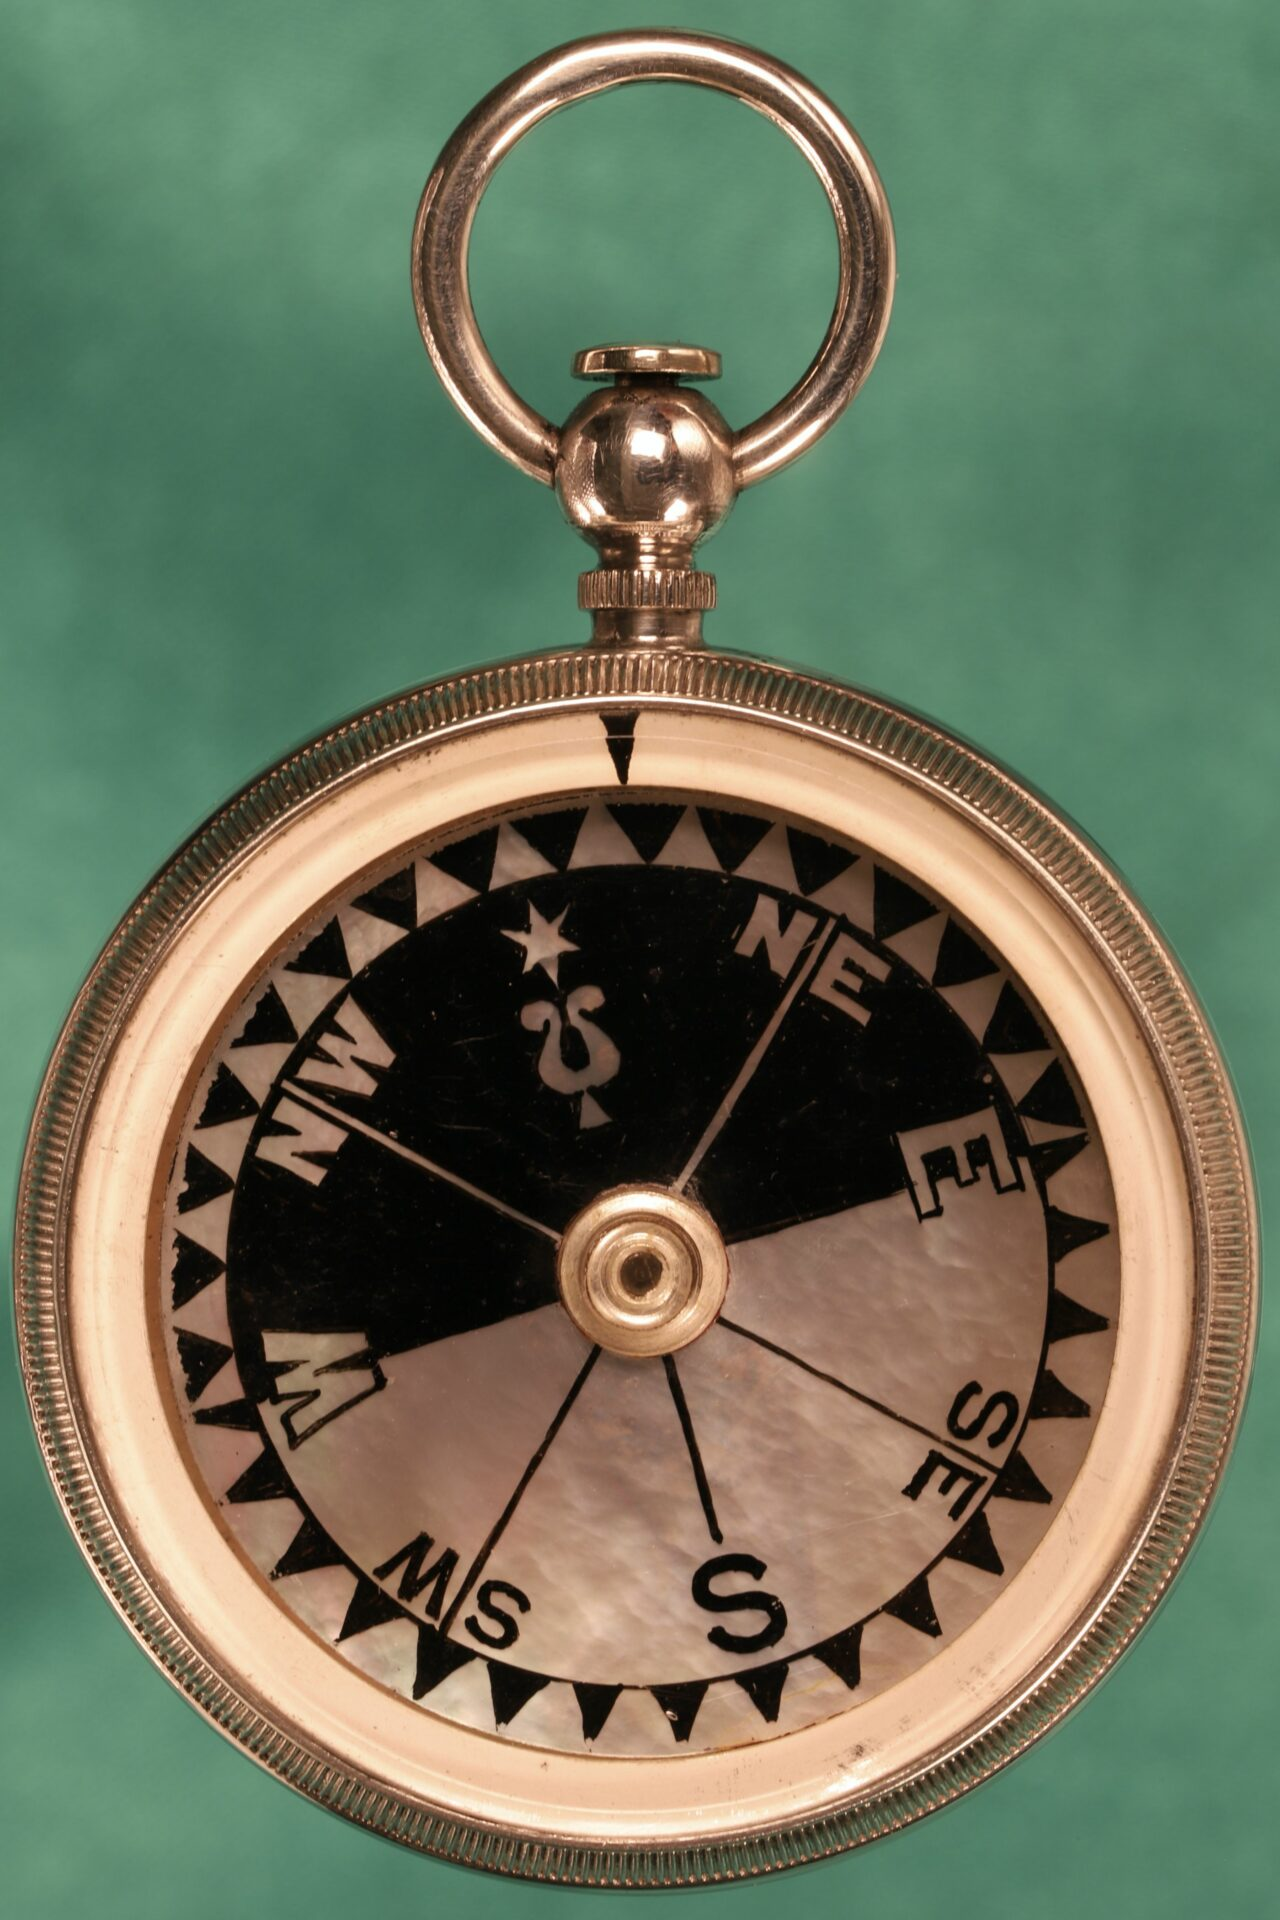 Image of front of compass from Houghton & Gunn Silver Travel Compendium c1895